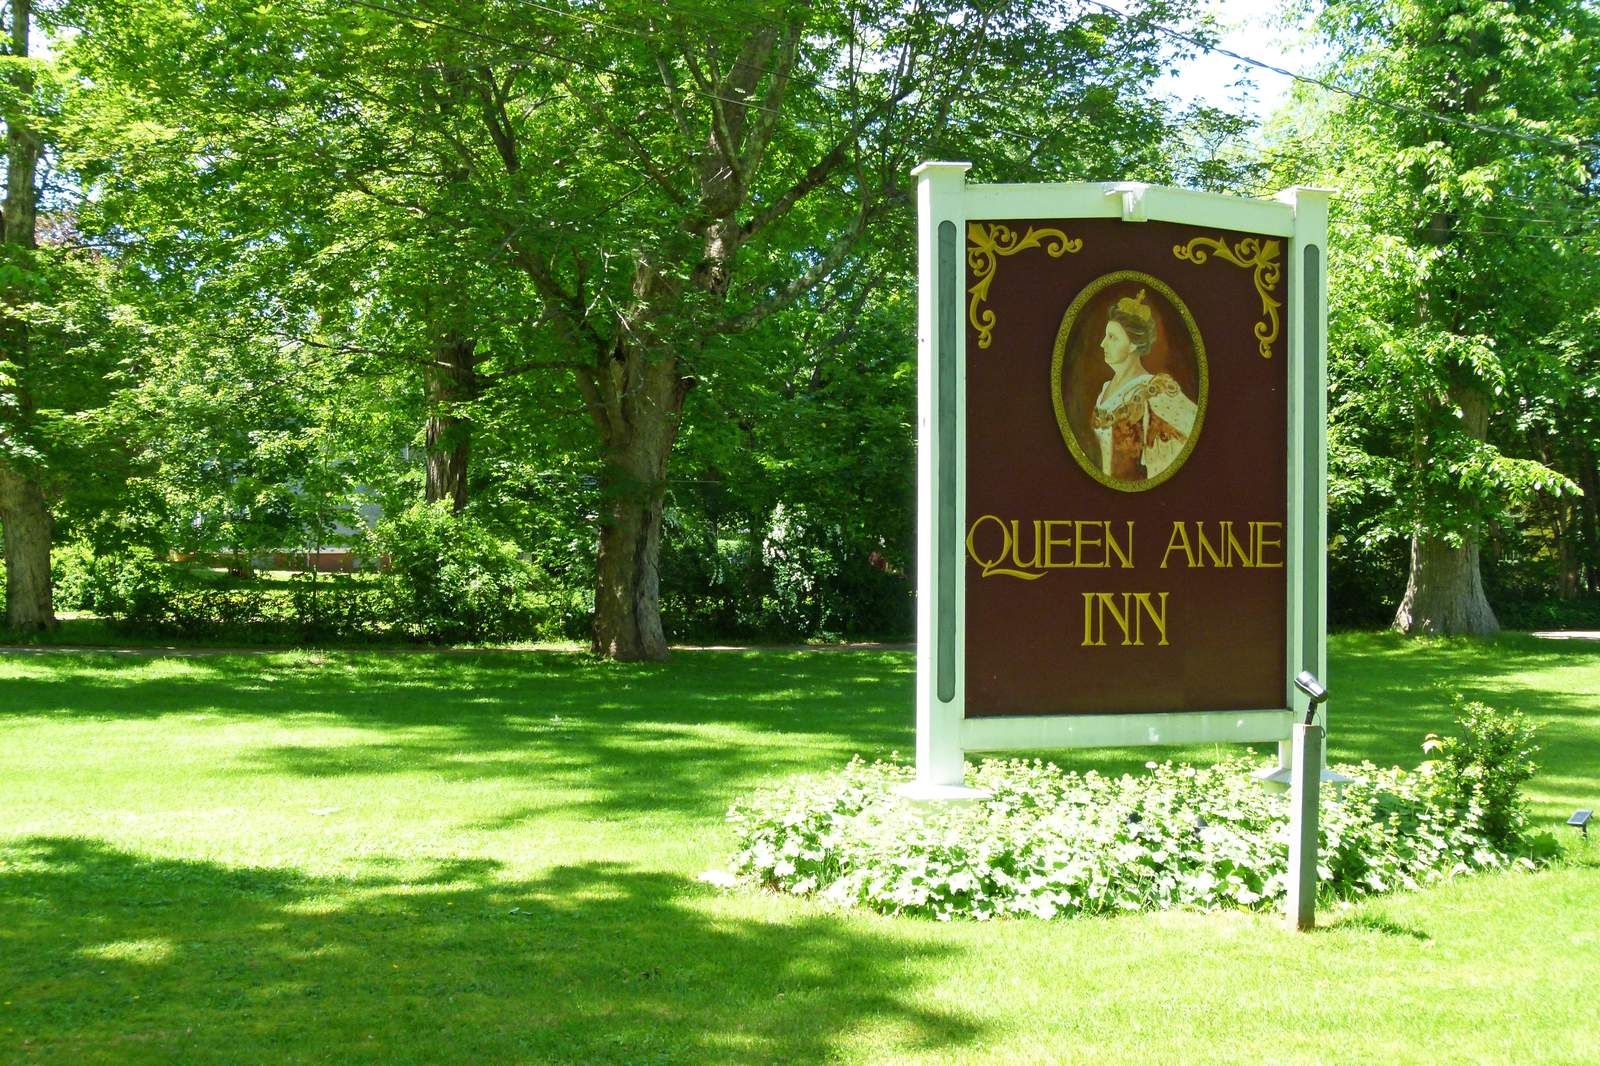 Queen Anne Inn